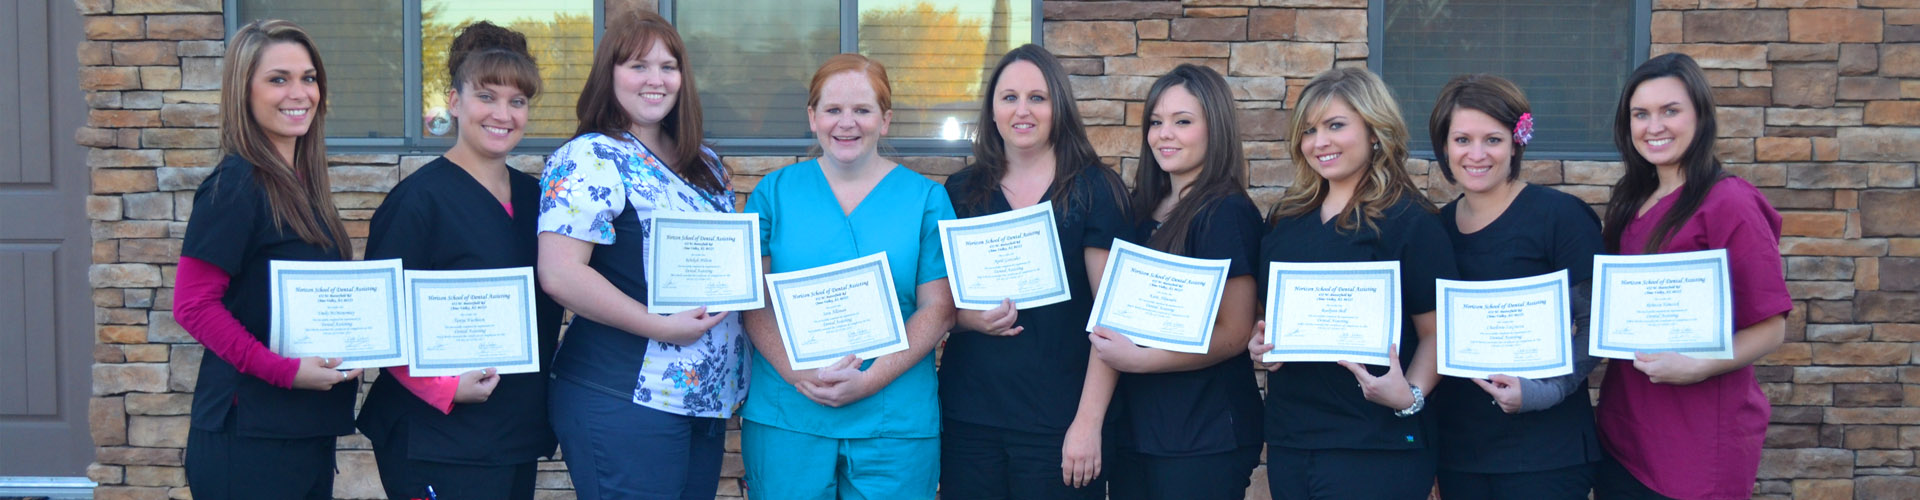 Dental Assistant School of Little Rock